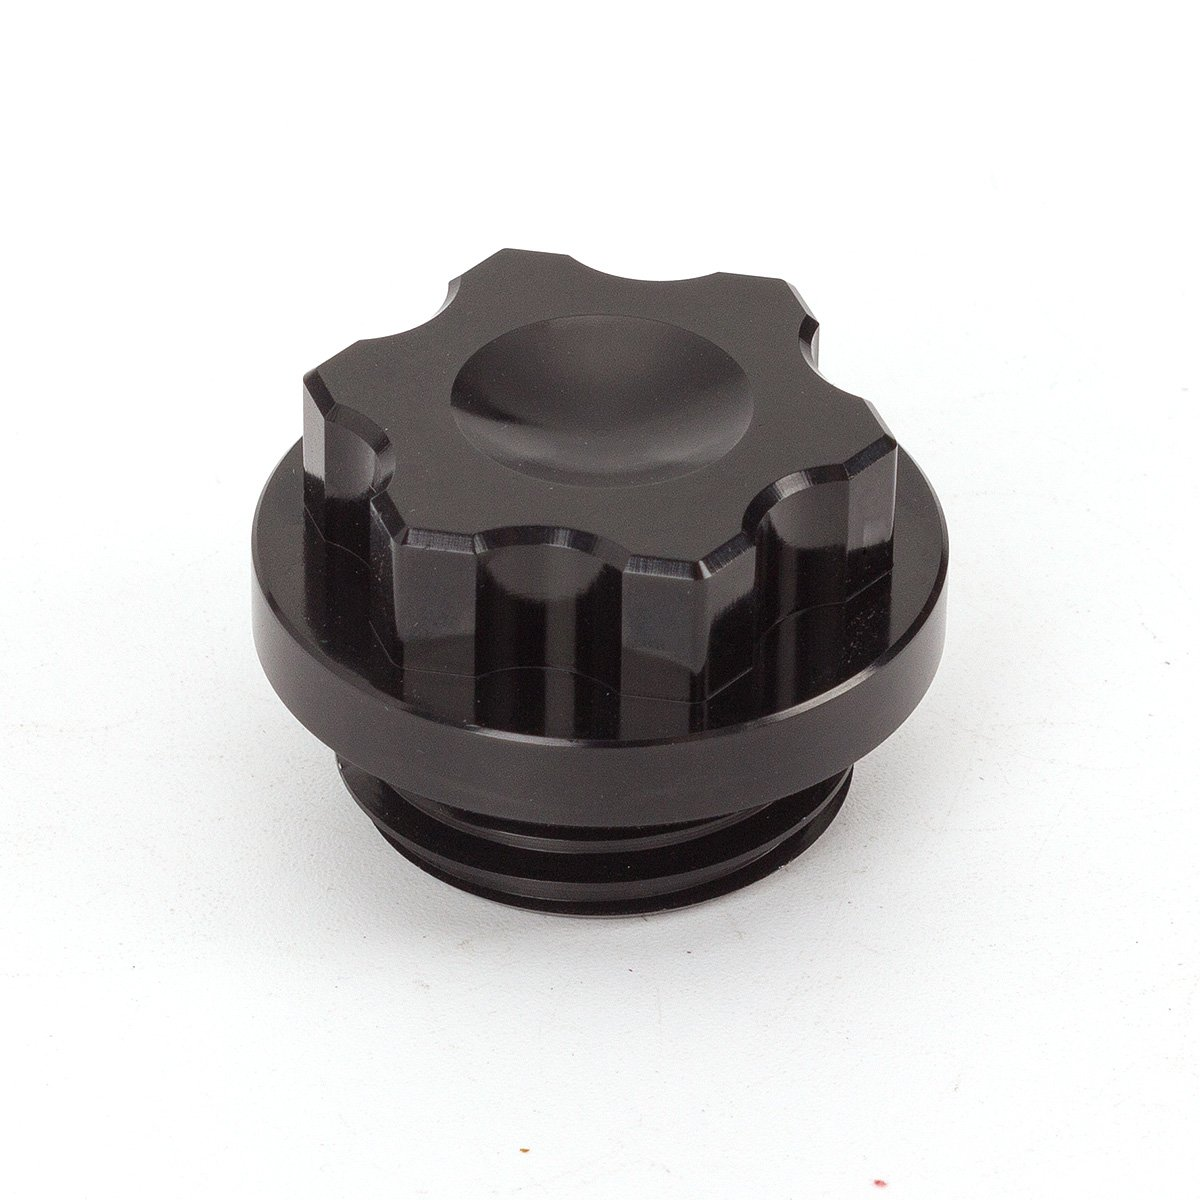 FXCNC Racing Motorcycle Anodized Filler Oil Caps fit for Yamaha YZF R1 1998-2003, 2007-2012 Aluminum Black